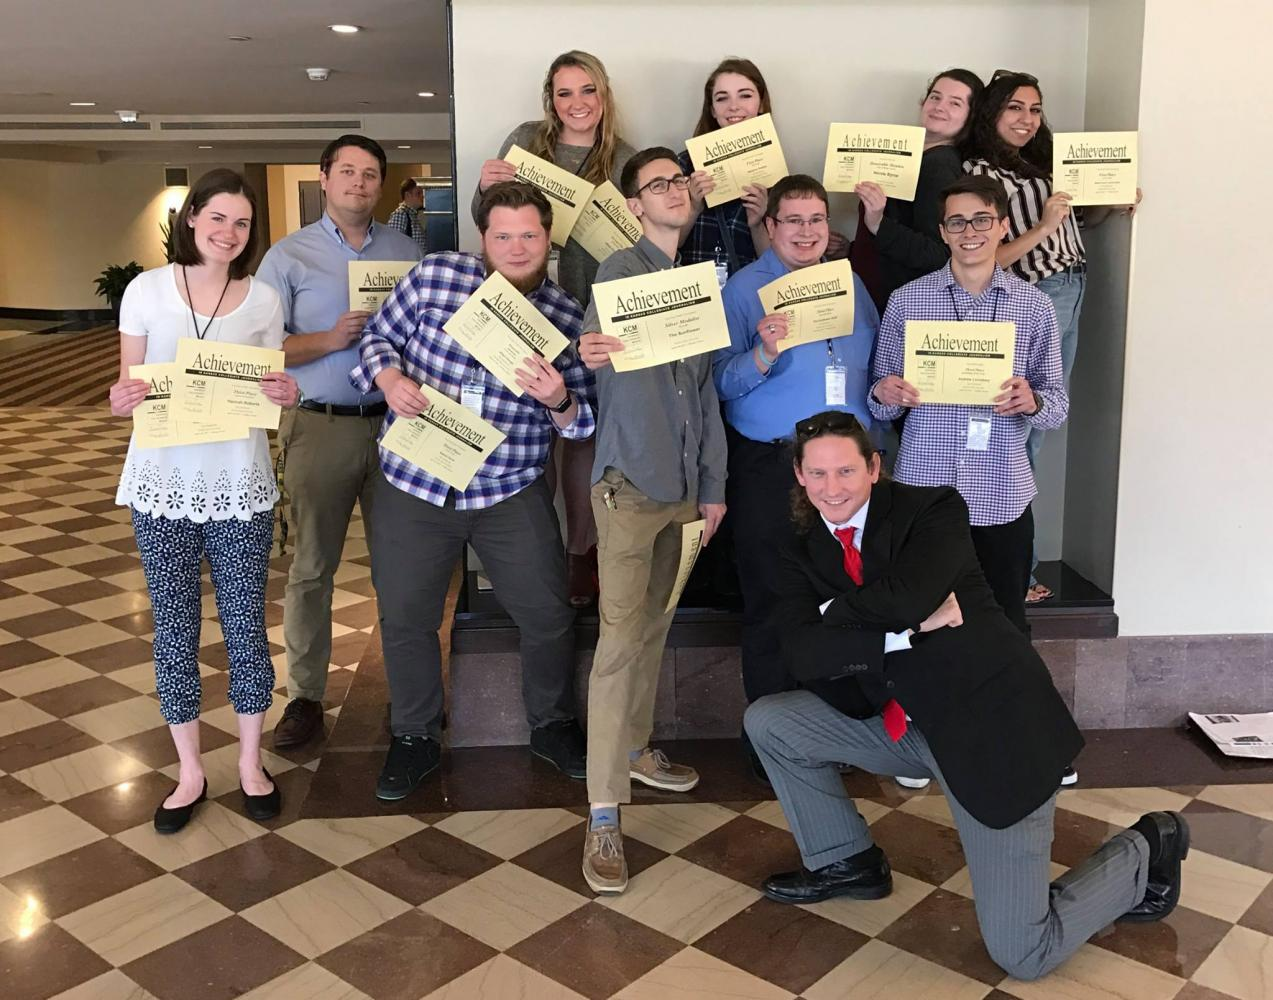 Members of The Sunflower staff pose with certificates earned at the Kansas Collegiate Media conference, held last month in Wichita. The staff collected 42 awards at the conference.